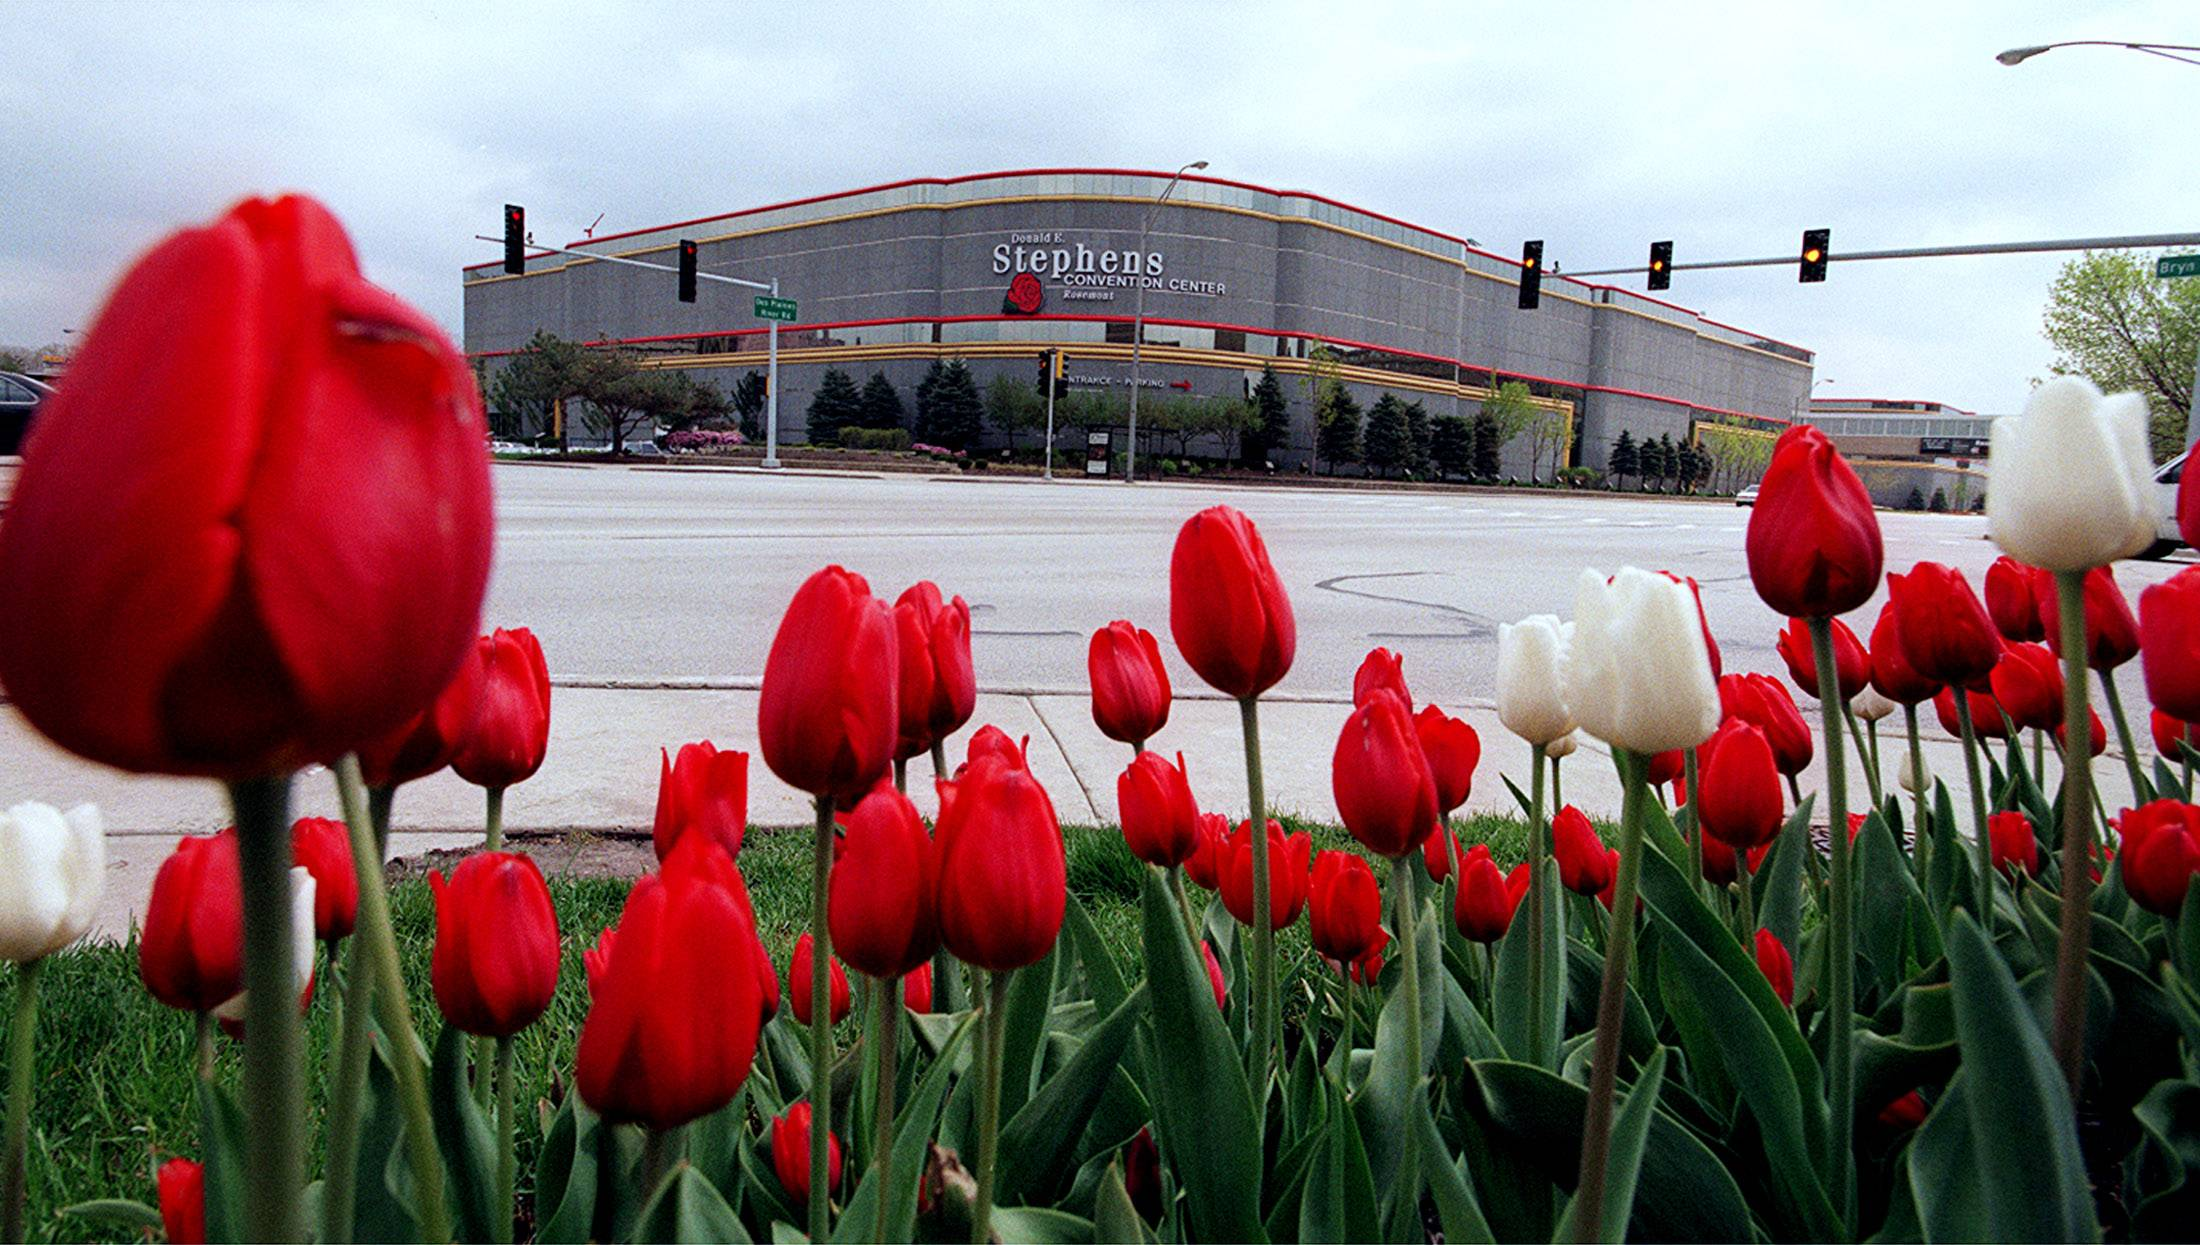 The Donald E. Stephens Convention Center in Rosemont will undergo a $2.5 million renovation funded by the facility's concessions vendor, Aramark Sports and Entertainment Services. Aramark also received an extension on its contract to provide concessions running through 2029.